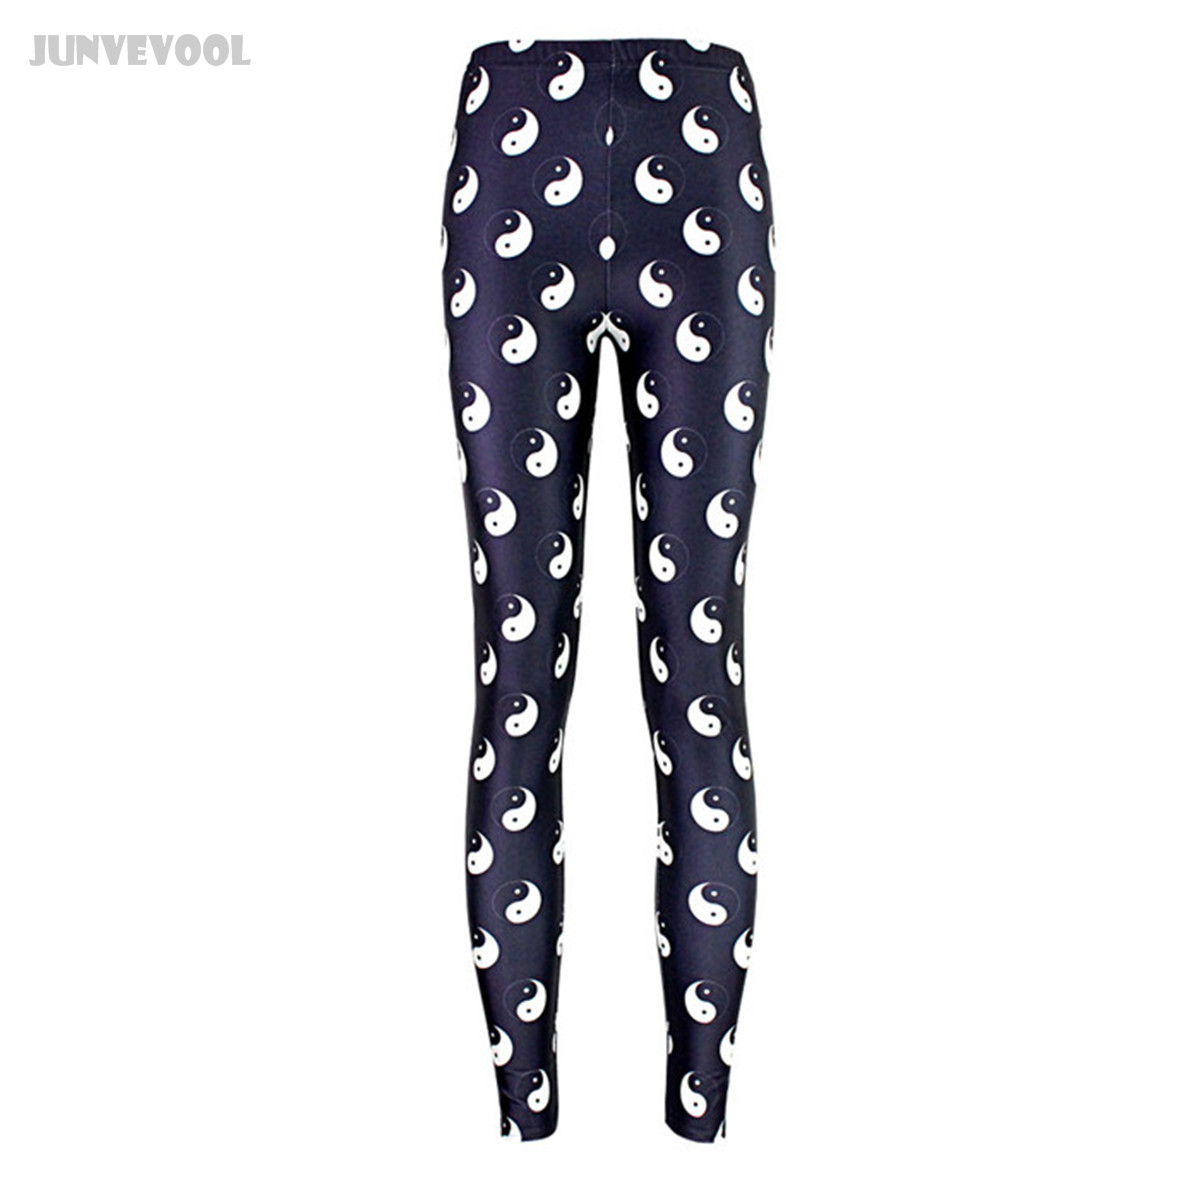 Sexy Pants Lady High Waist Stretch Leggings Womens Shiny Wet Look Skinny Slim Pant Tai Chi Gossip Printed Black White Color Mix